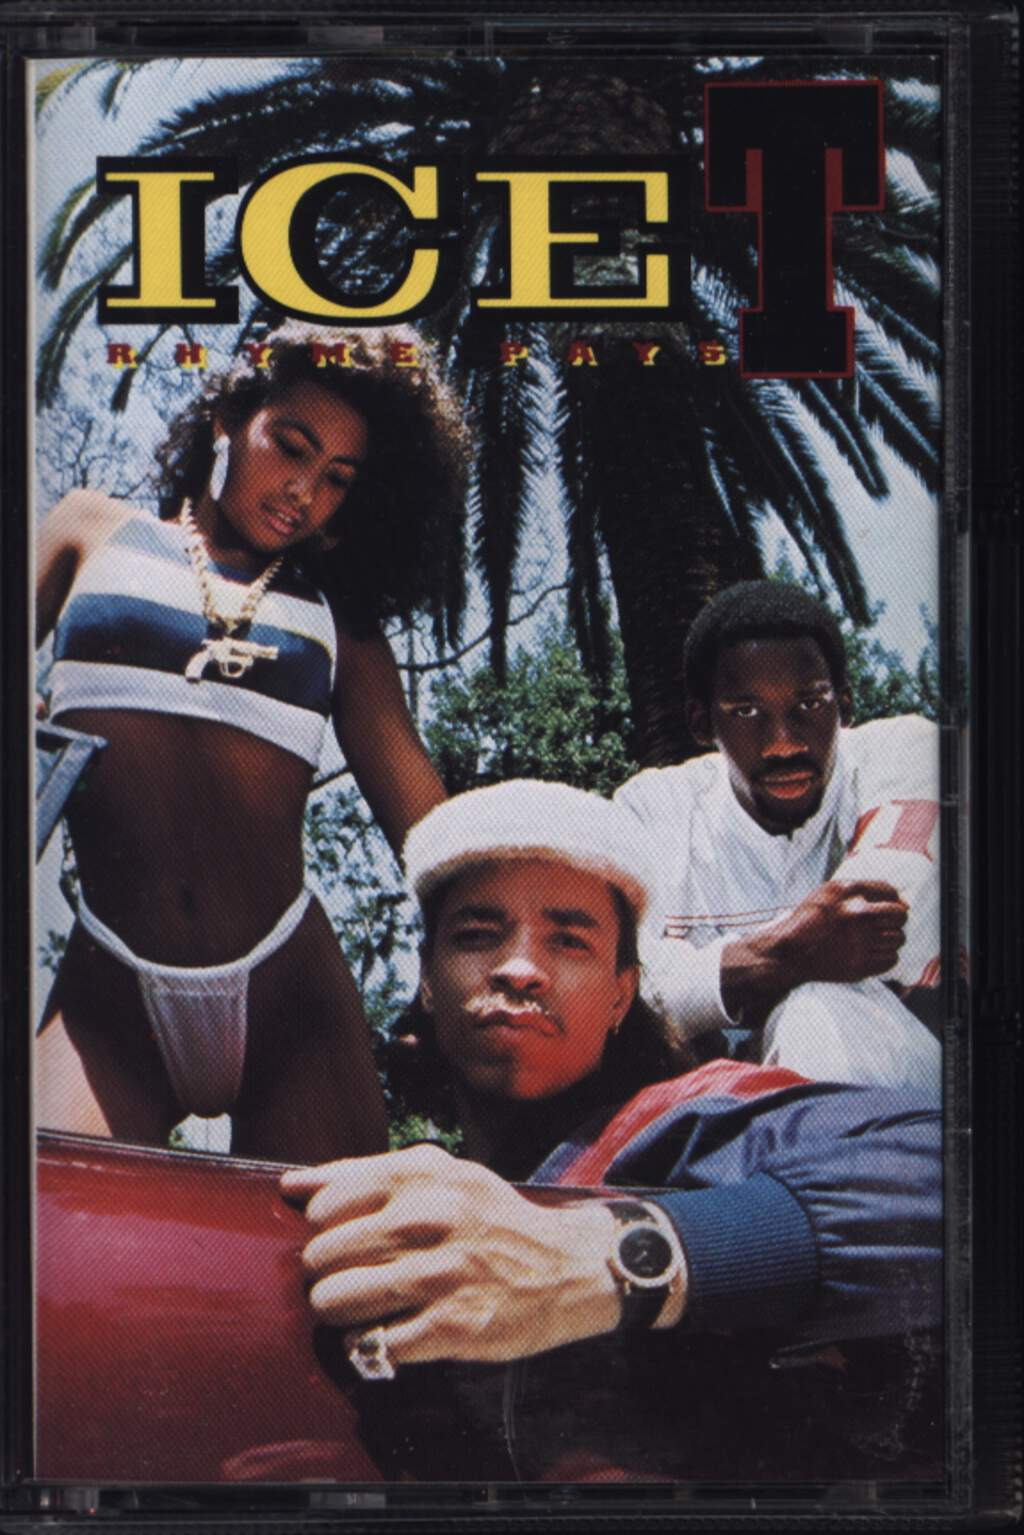 Ice-T: Rhyme Pays, Compact Cassette